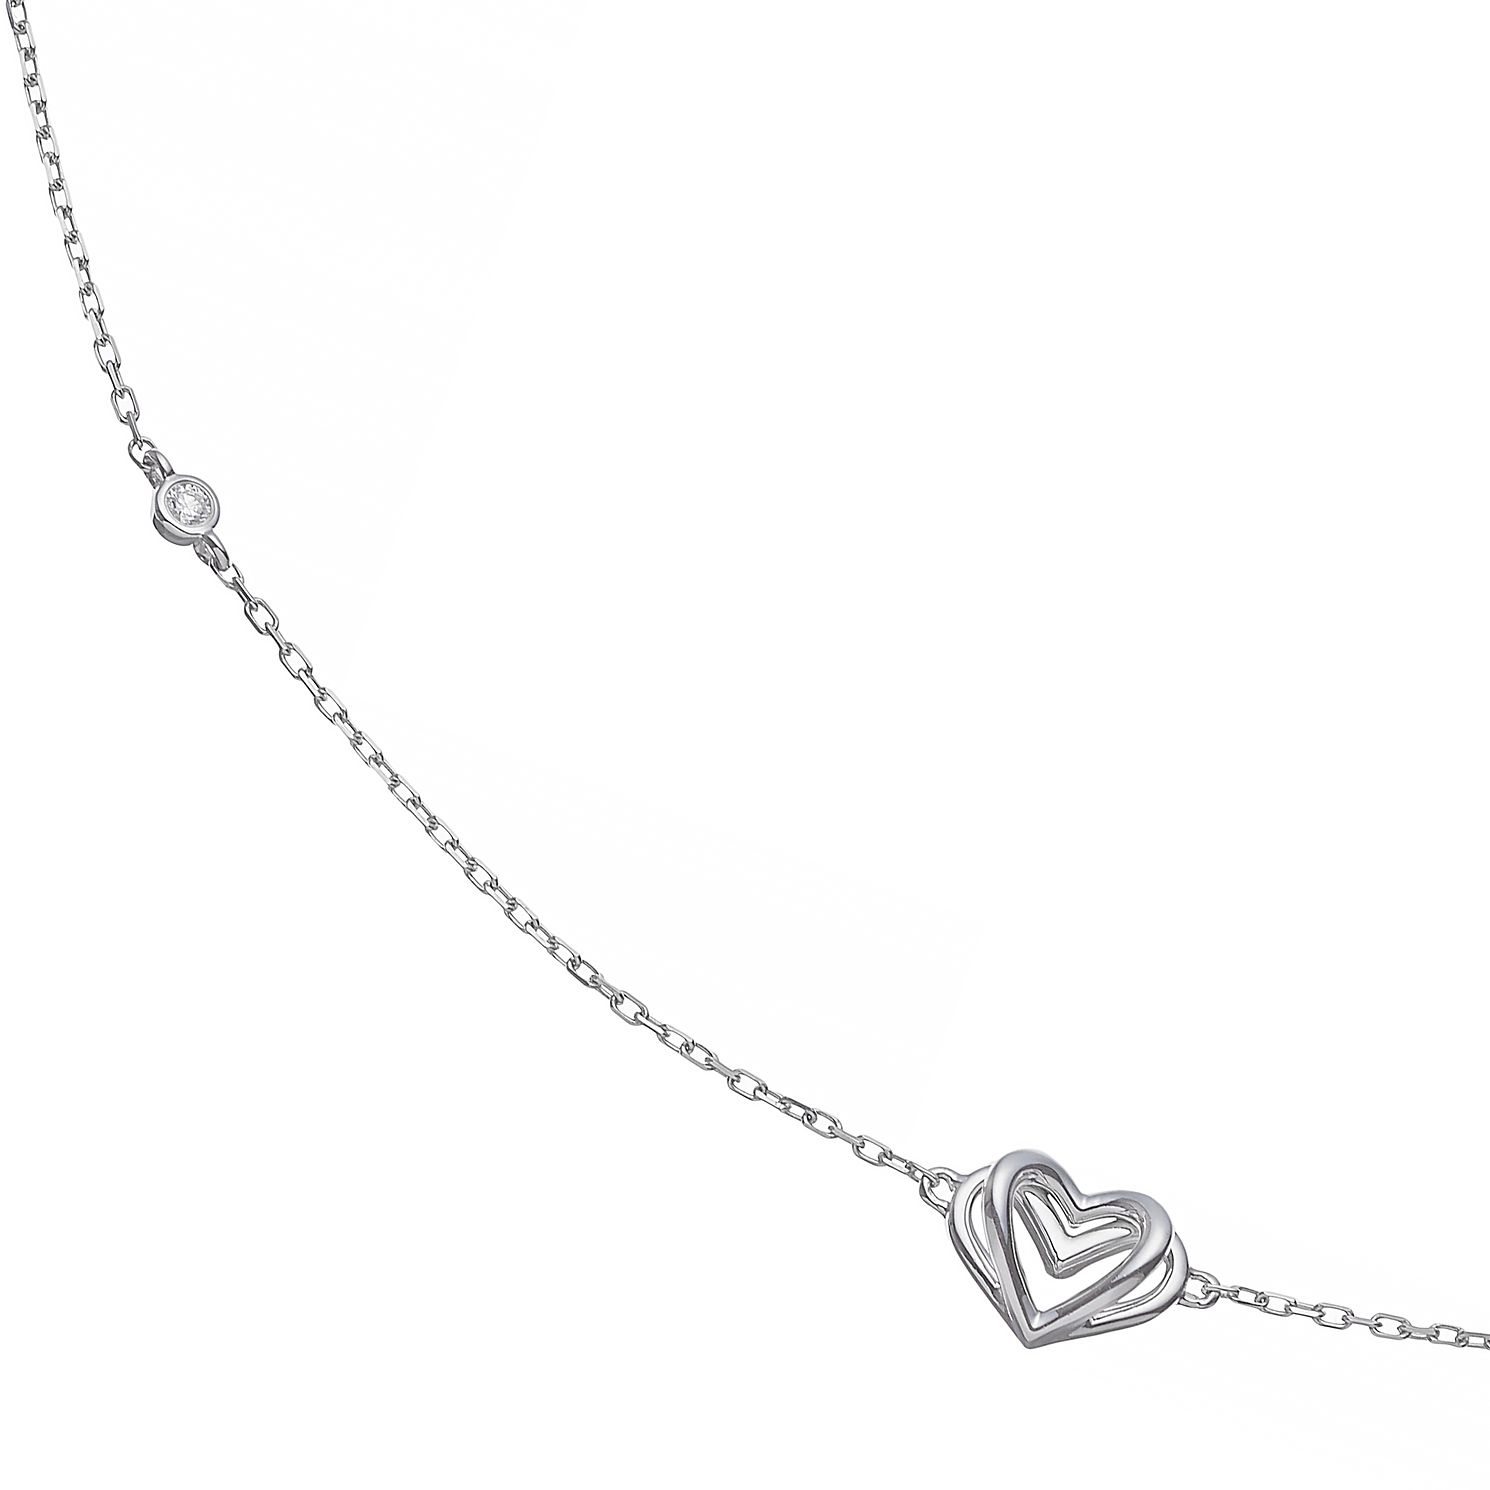 Vera Wang Sterling Silver Diamond Kindred Heart Necklace - Product number 4504267